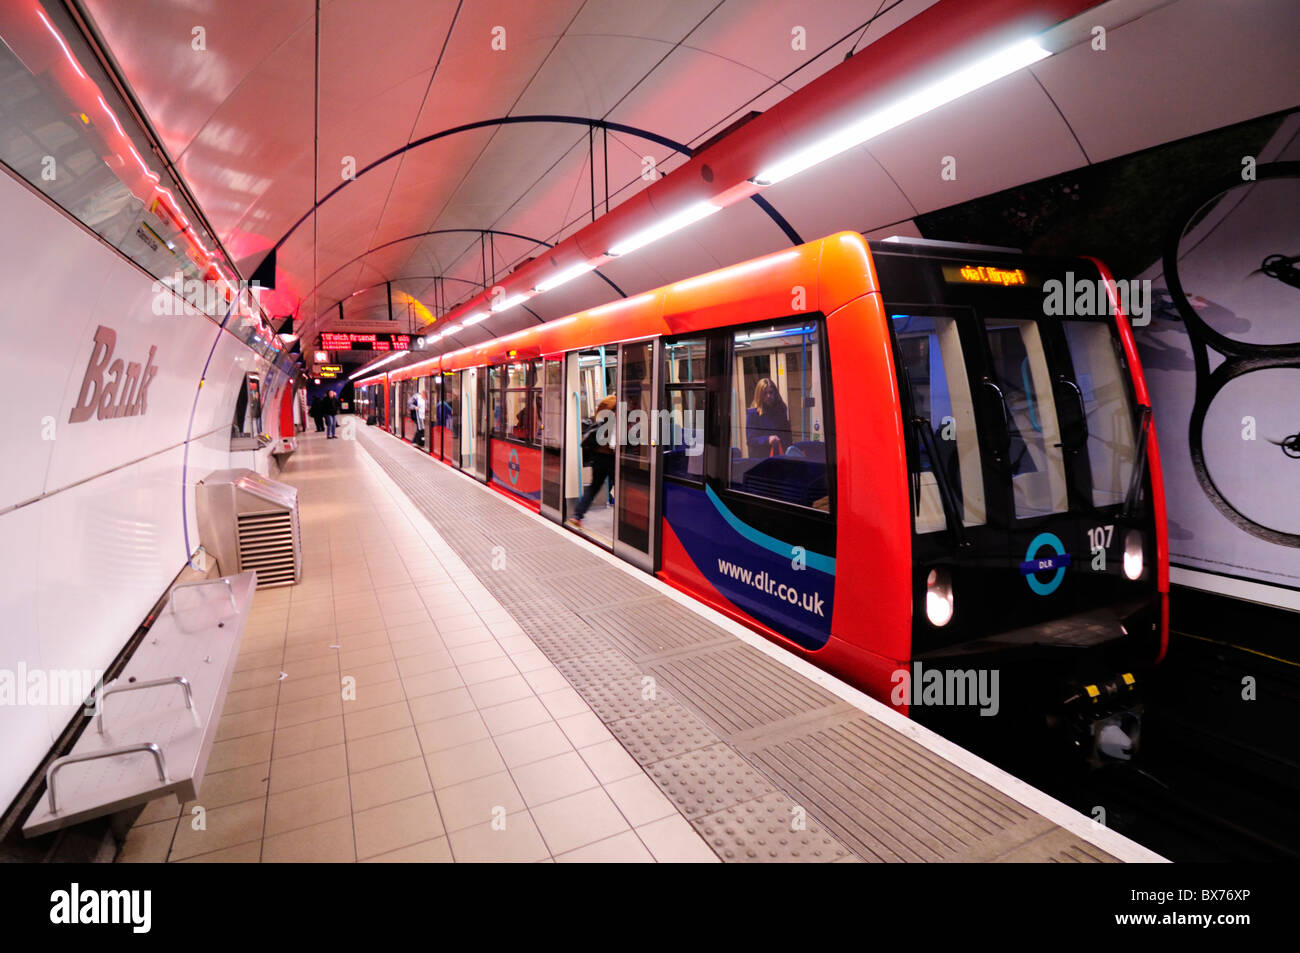 A Docklands Light Railway DLR train at Bank Station, London, England, UK - Stock Image